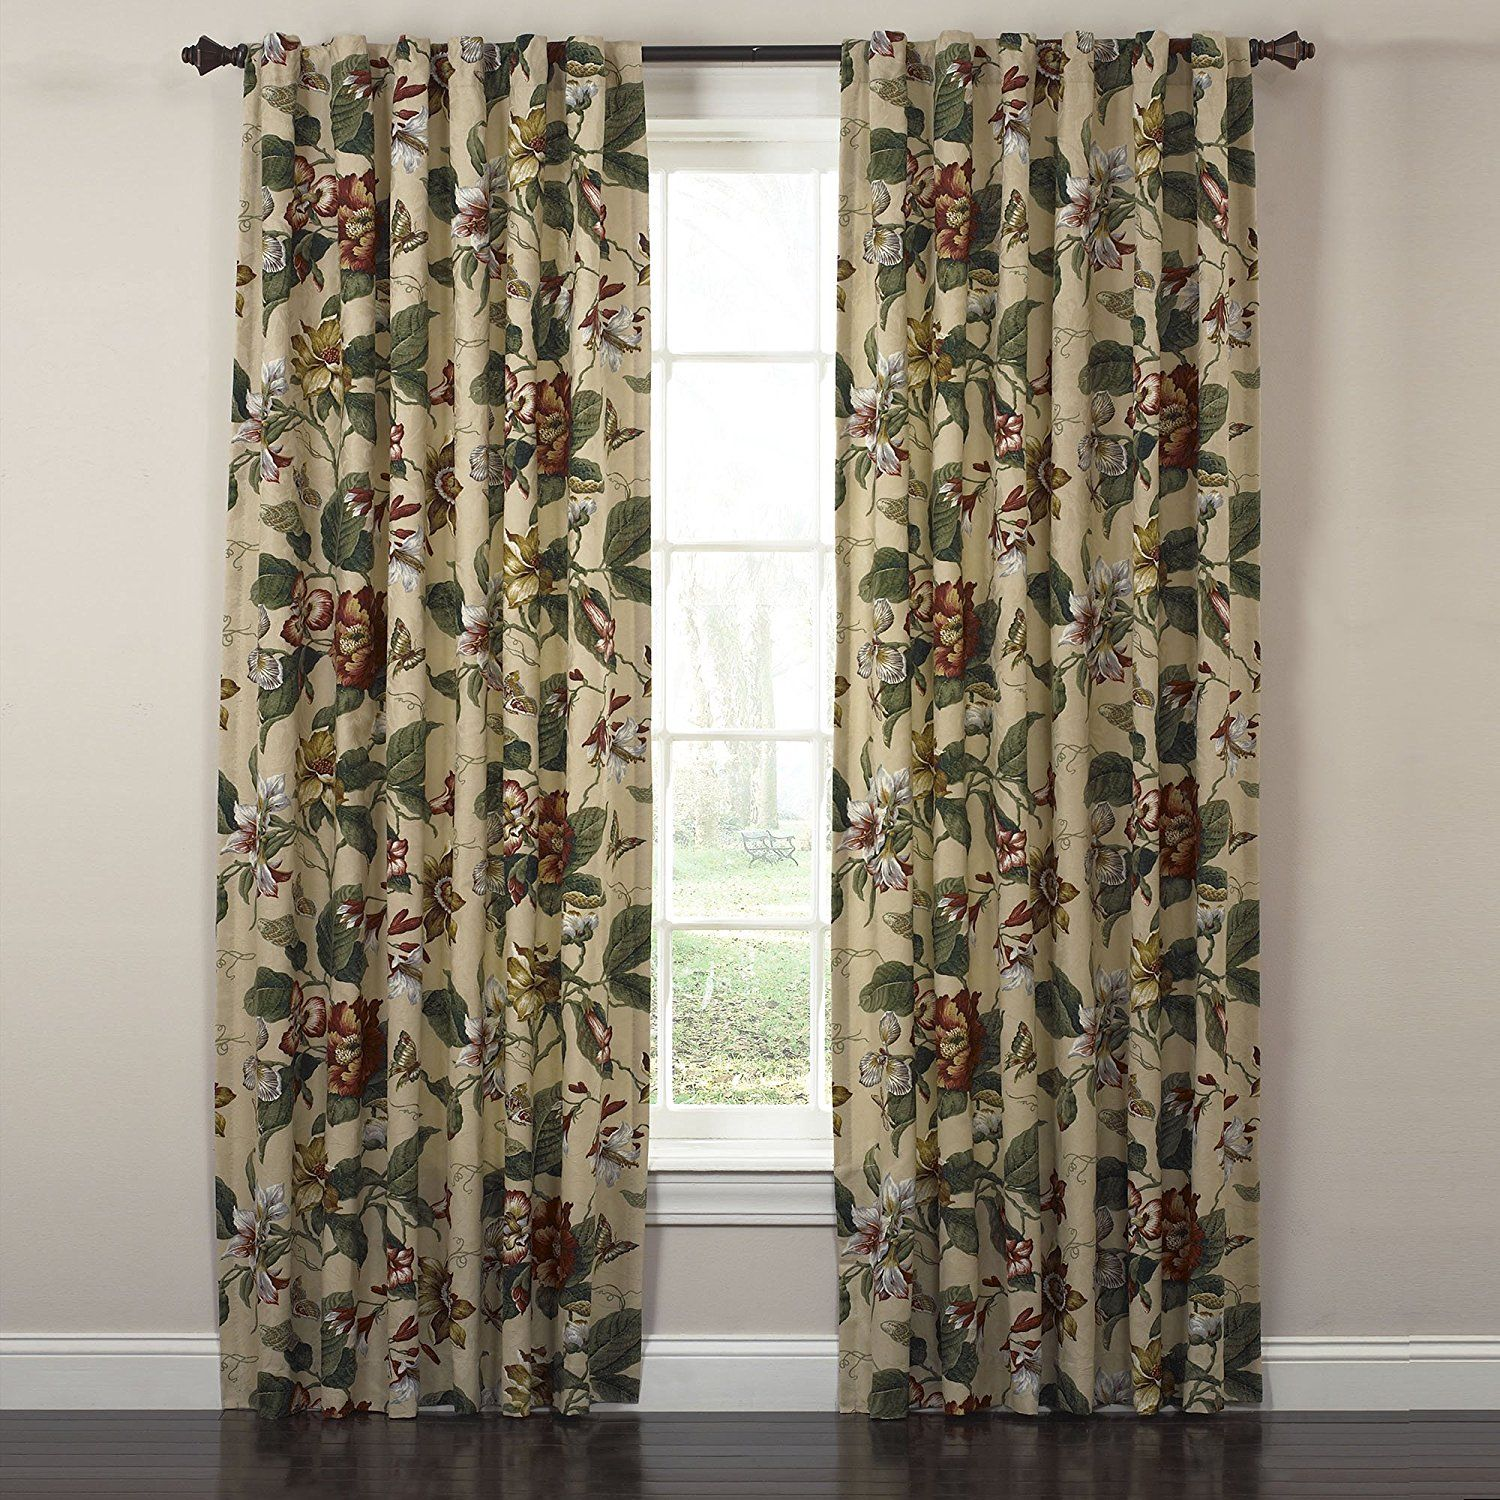 Waverly Laurel Springs Lined Panel Pair Curtain100 Inch Wide X 84 Long New And Awesome Product Awaits You Read It Now This Is An Amazon Affiliate